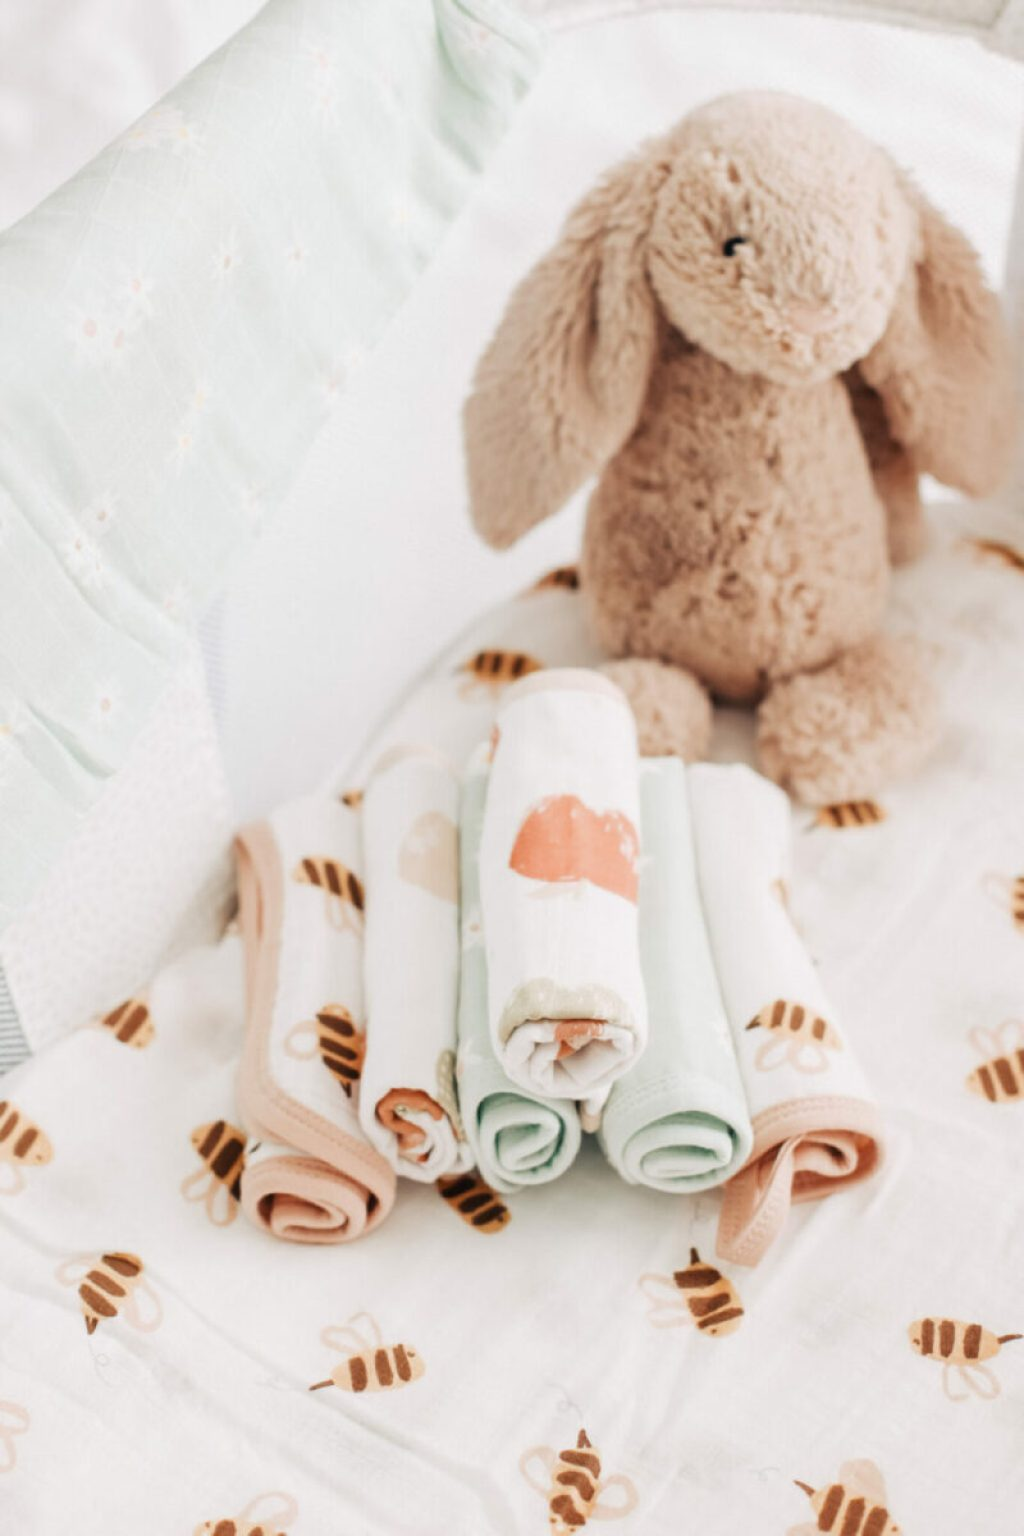 Save money on baby products by using a muslin swaddle blanket in different ways. Practical, multifunctional and a newborn must have! Newborn Essentials | Baby Products | Baby Must Haves | Motherhood | Frugal Living | Swaddling | Swaddle Blankets | Useful Tips | New Moms | Bassinet | Nursery Decor | Nursing | Car Seat Cover | Washcloths | Gender Neutral Amazon | Nightingale Baby |